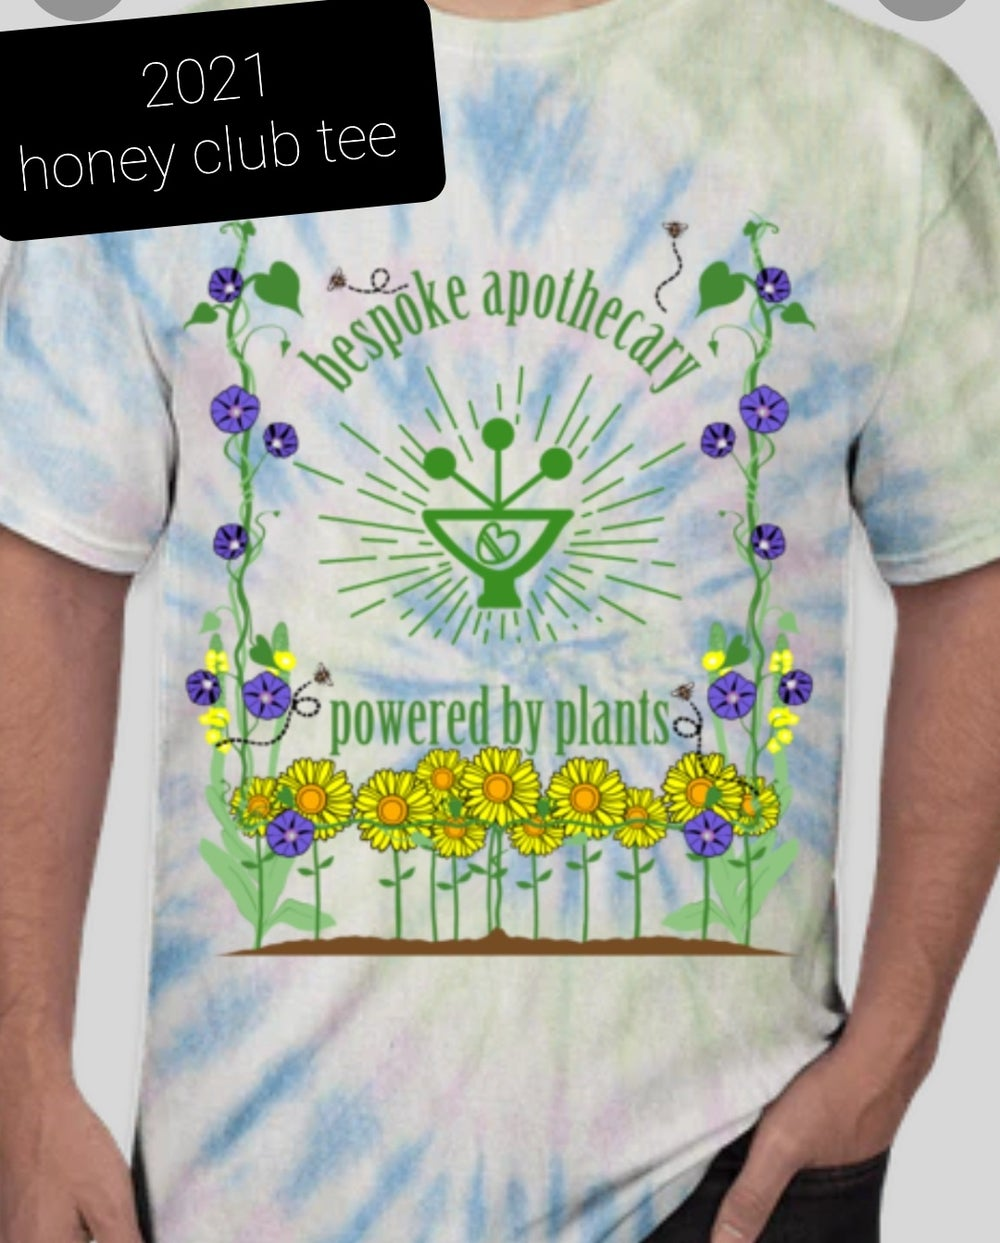 SOLD OUT 🐝HONEY CLUB 2021 (5th annual!)